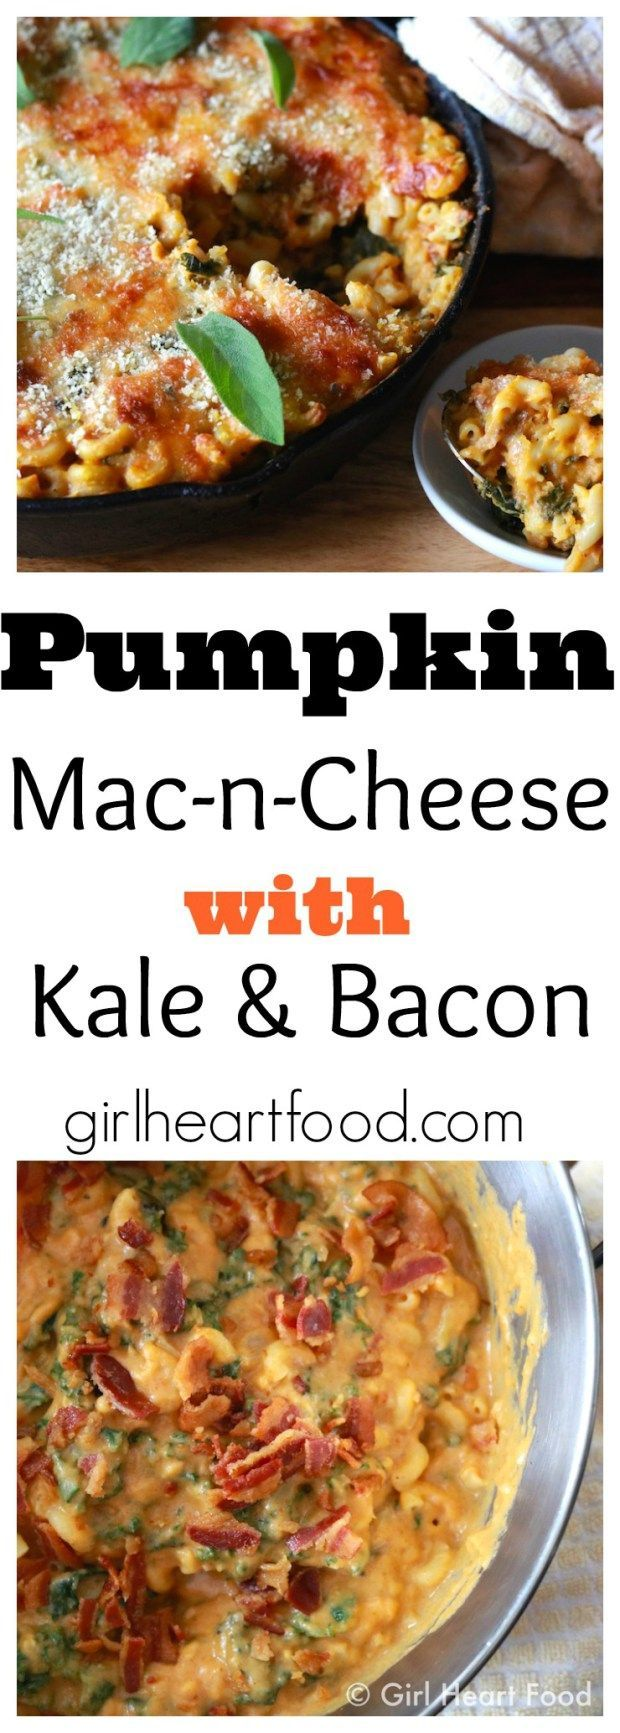 Pumpkin Mac and Cheese with Kale and Bacon - http://girlheartfood.com